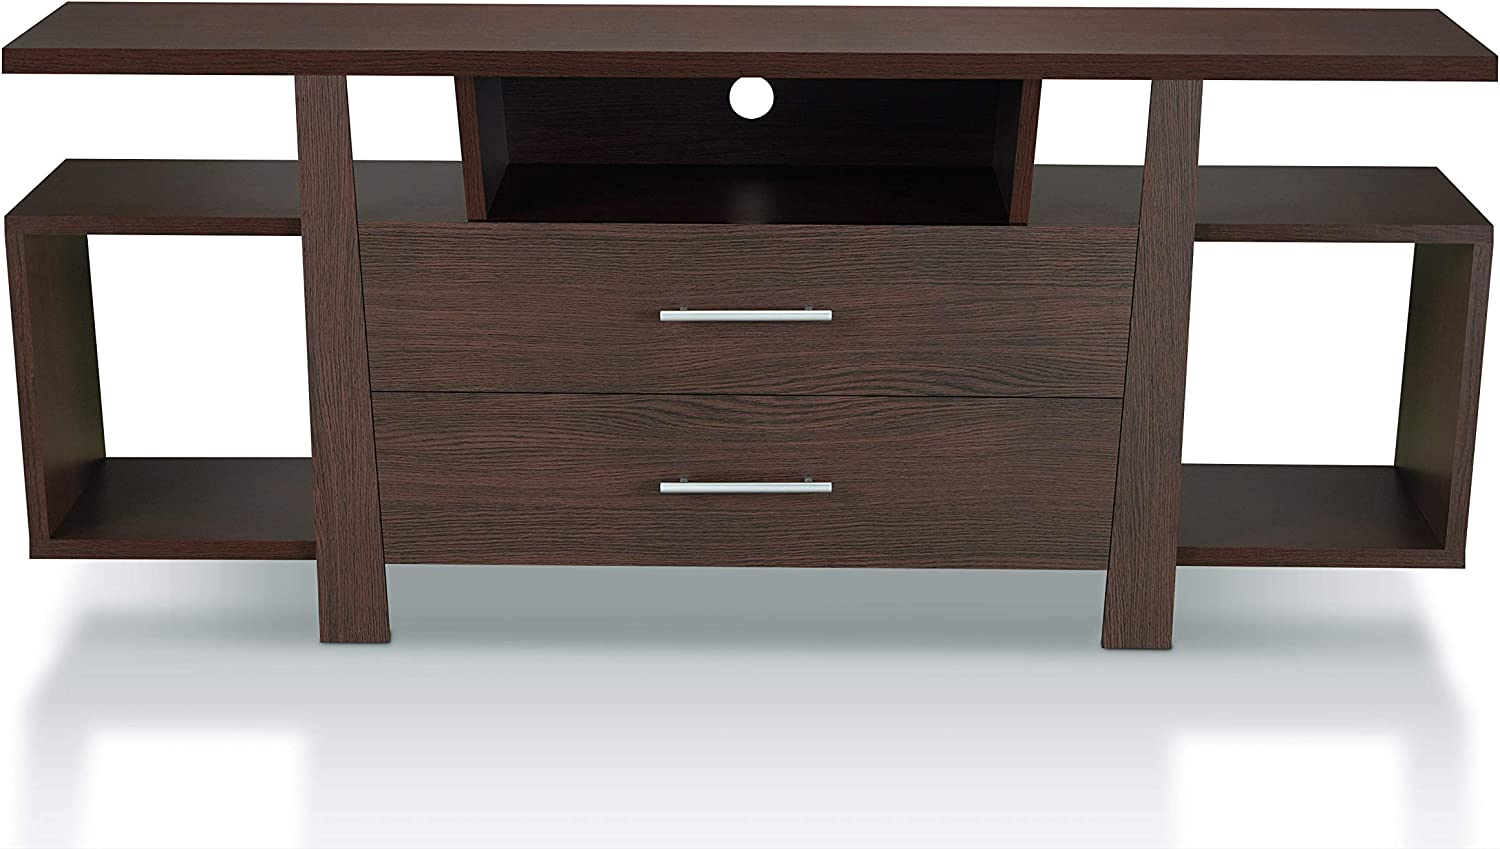 HOMES: Inside + Out Raphael Modern Wood Multi Storage 59-Inch TV Stand, Espresso